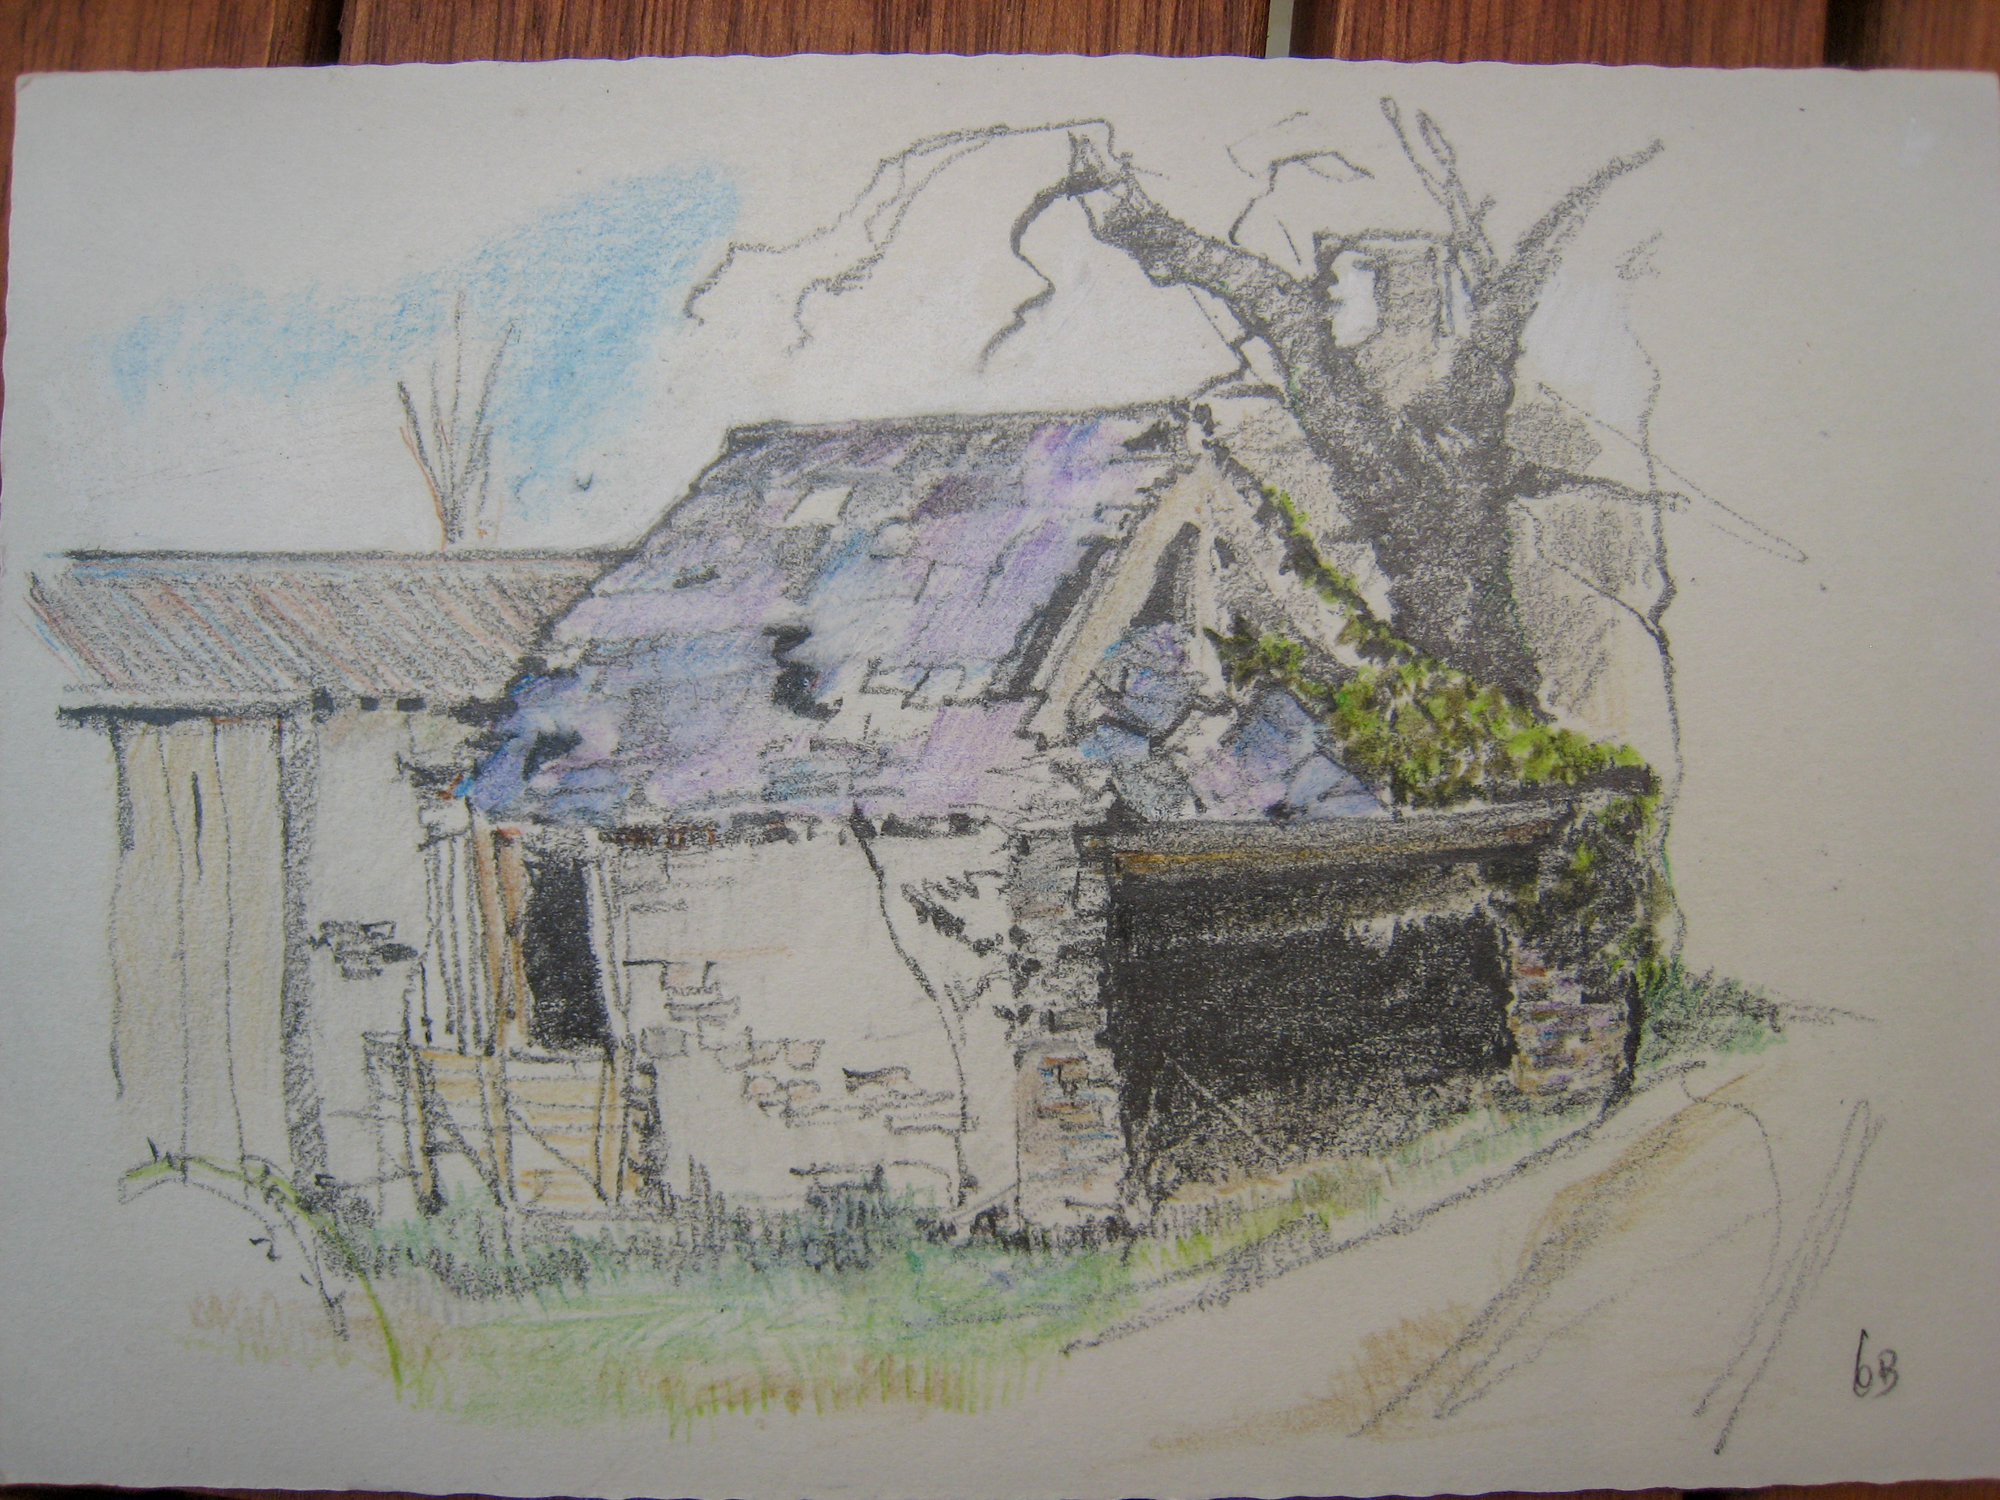 Homeliving: ruined Roundhouse?, coloured drawing